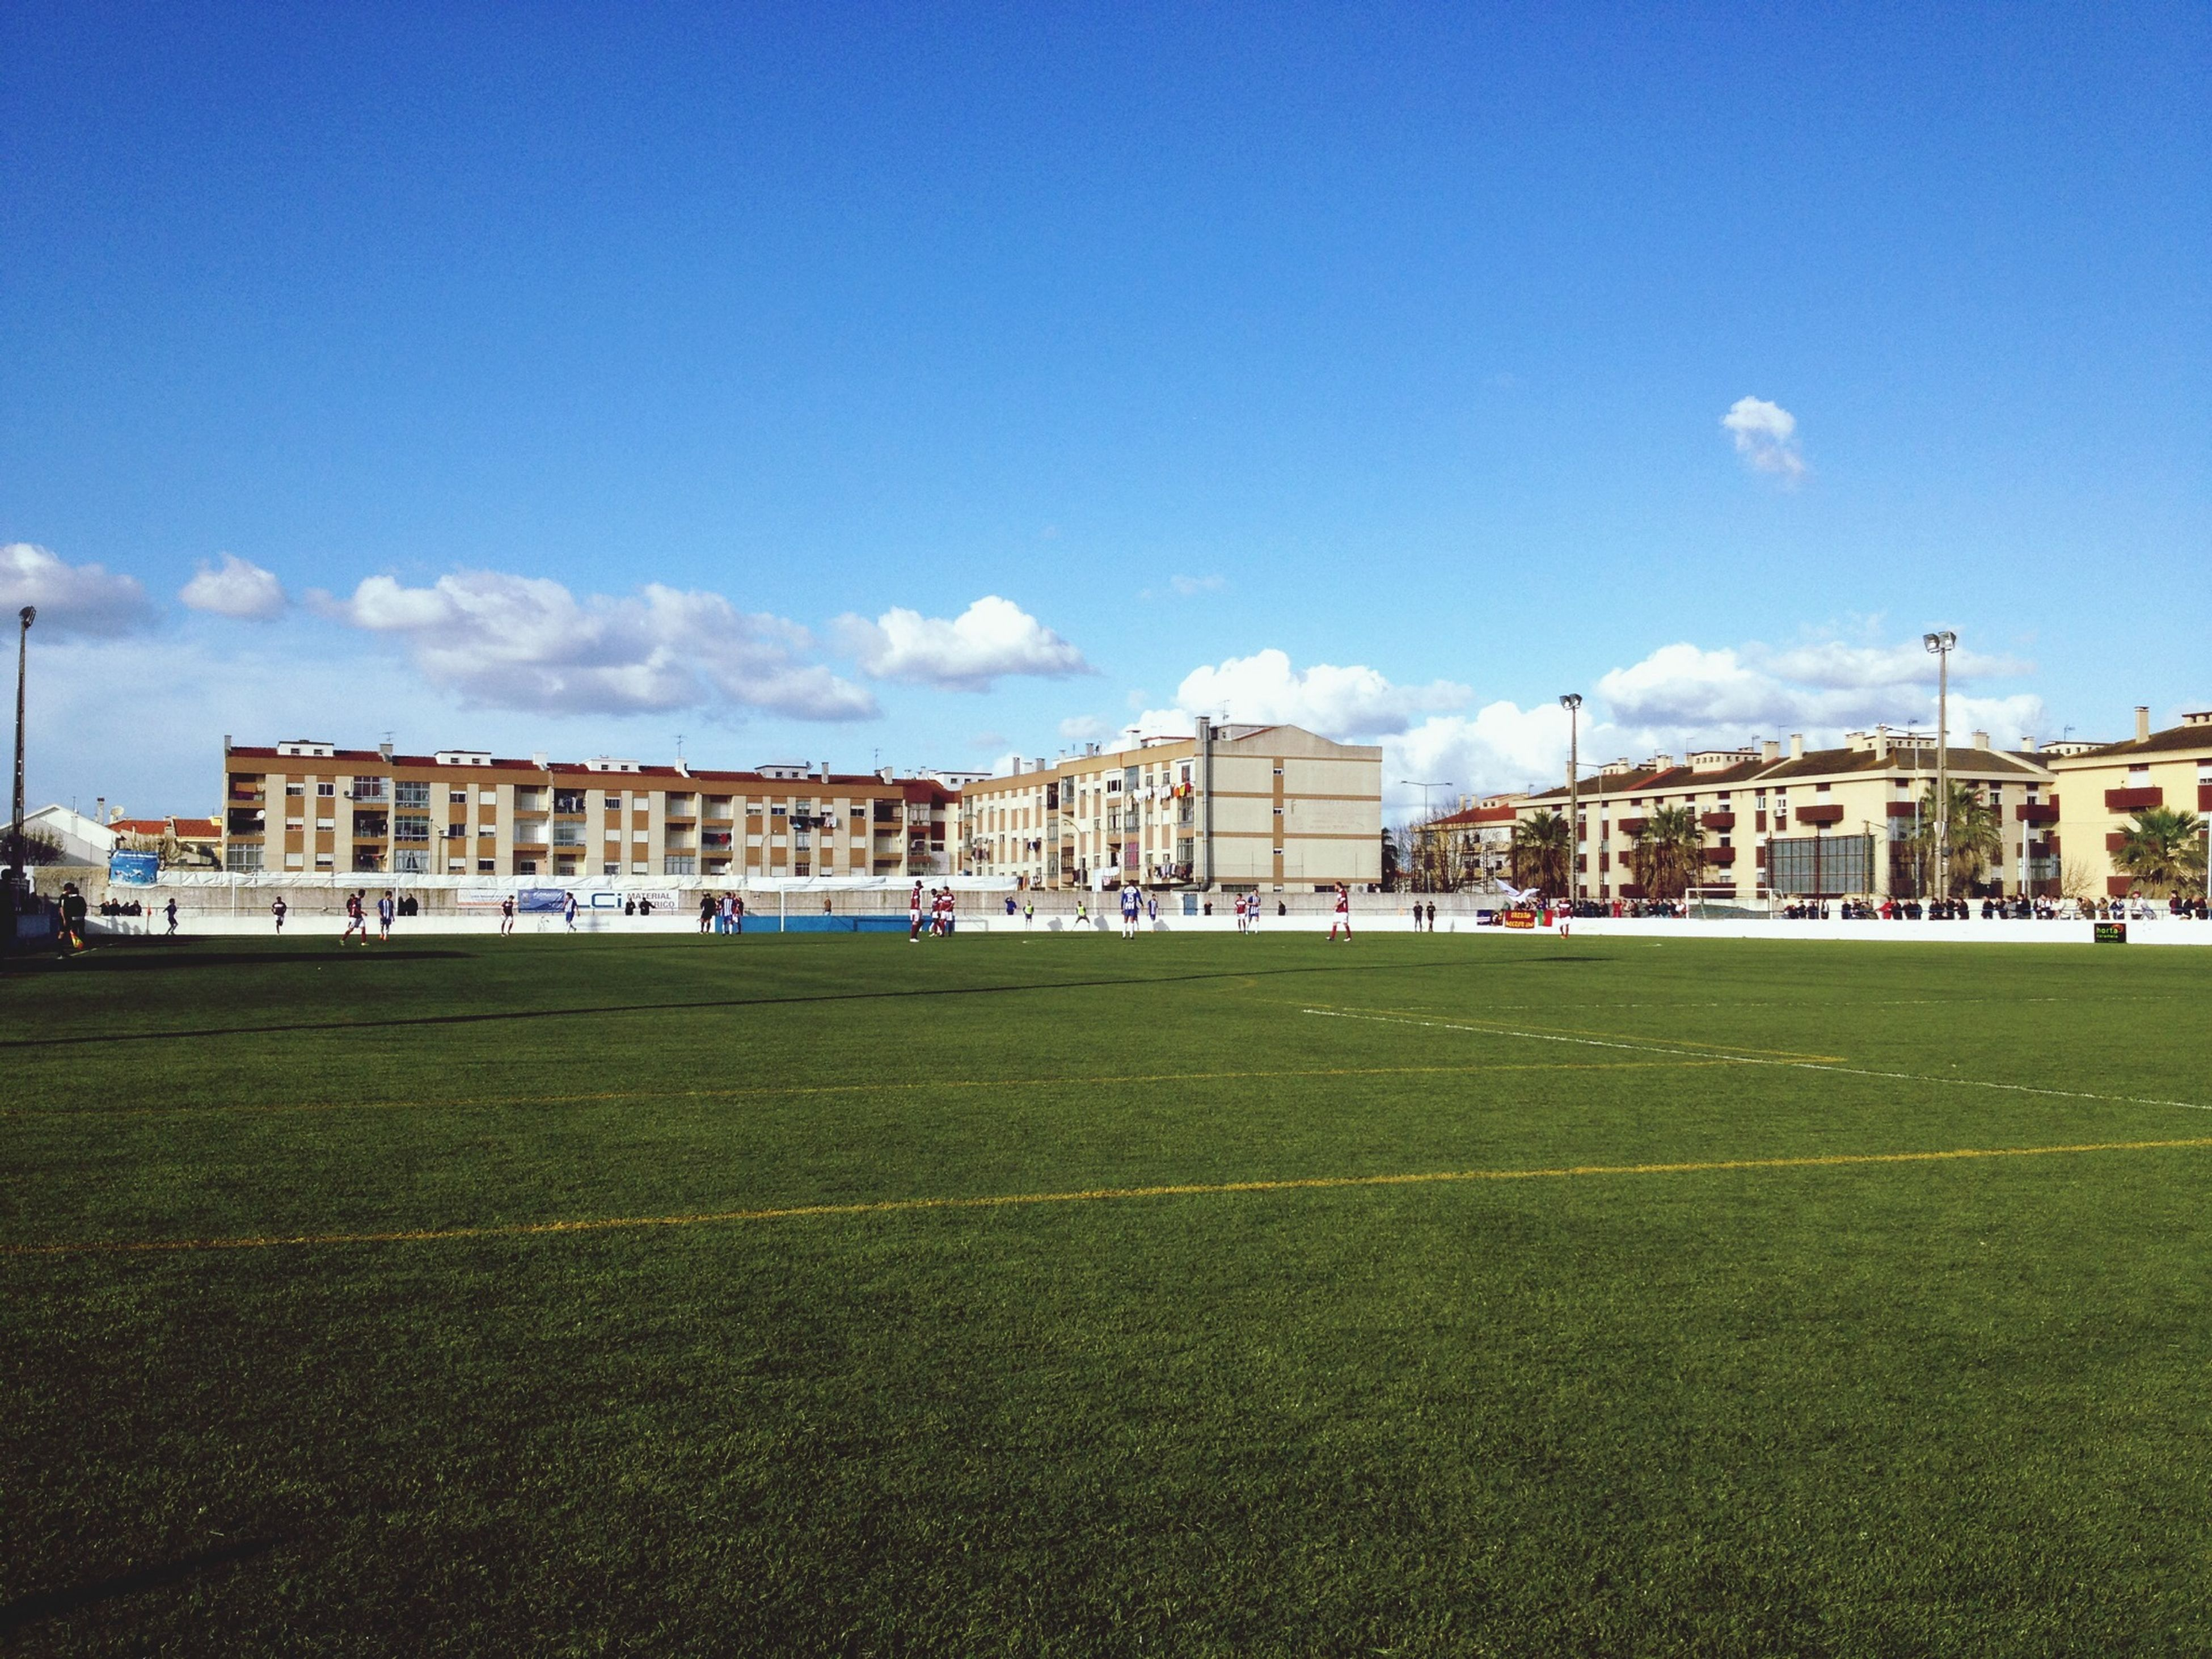 building exterior, architecture, grass, built structure, blue, sky, green color, field, grassy, cloud - sky, day, lawn, cloud, copy space, outdoors, incidental people, house, mid distance, nature, city